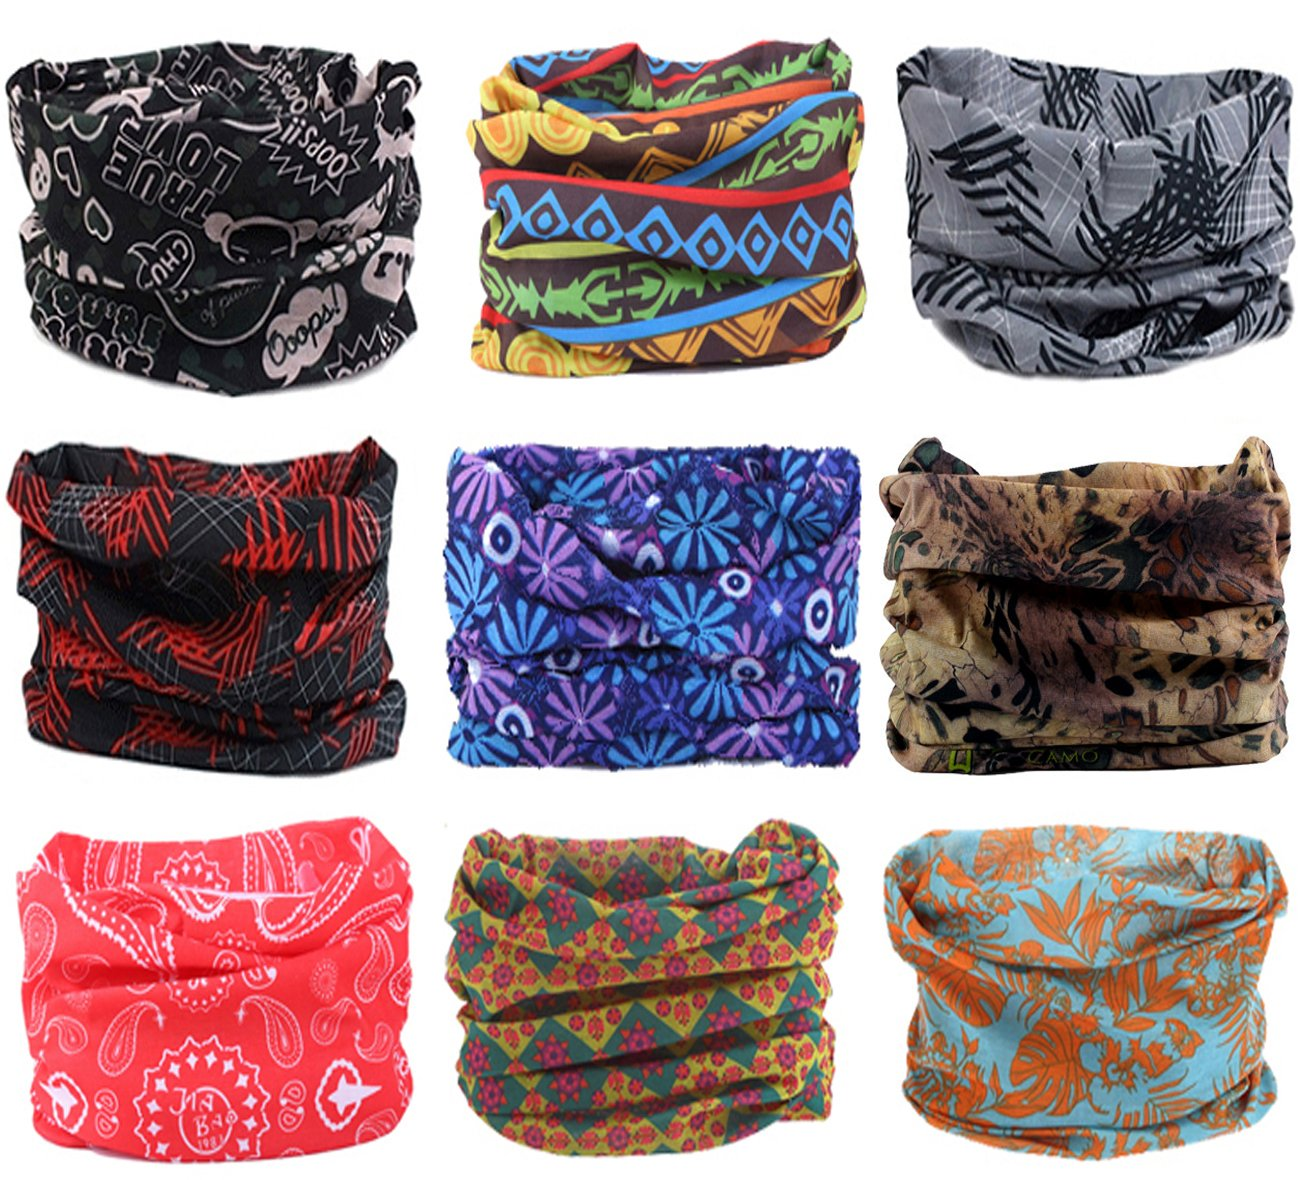 Womens Hairband Athletic Headwrap Outdoor Multifunctional Headwear KINGREE 9PCS Headbands Mens Sweatband High Elastic Headband with UV Resistance Sports Magic Scarf